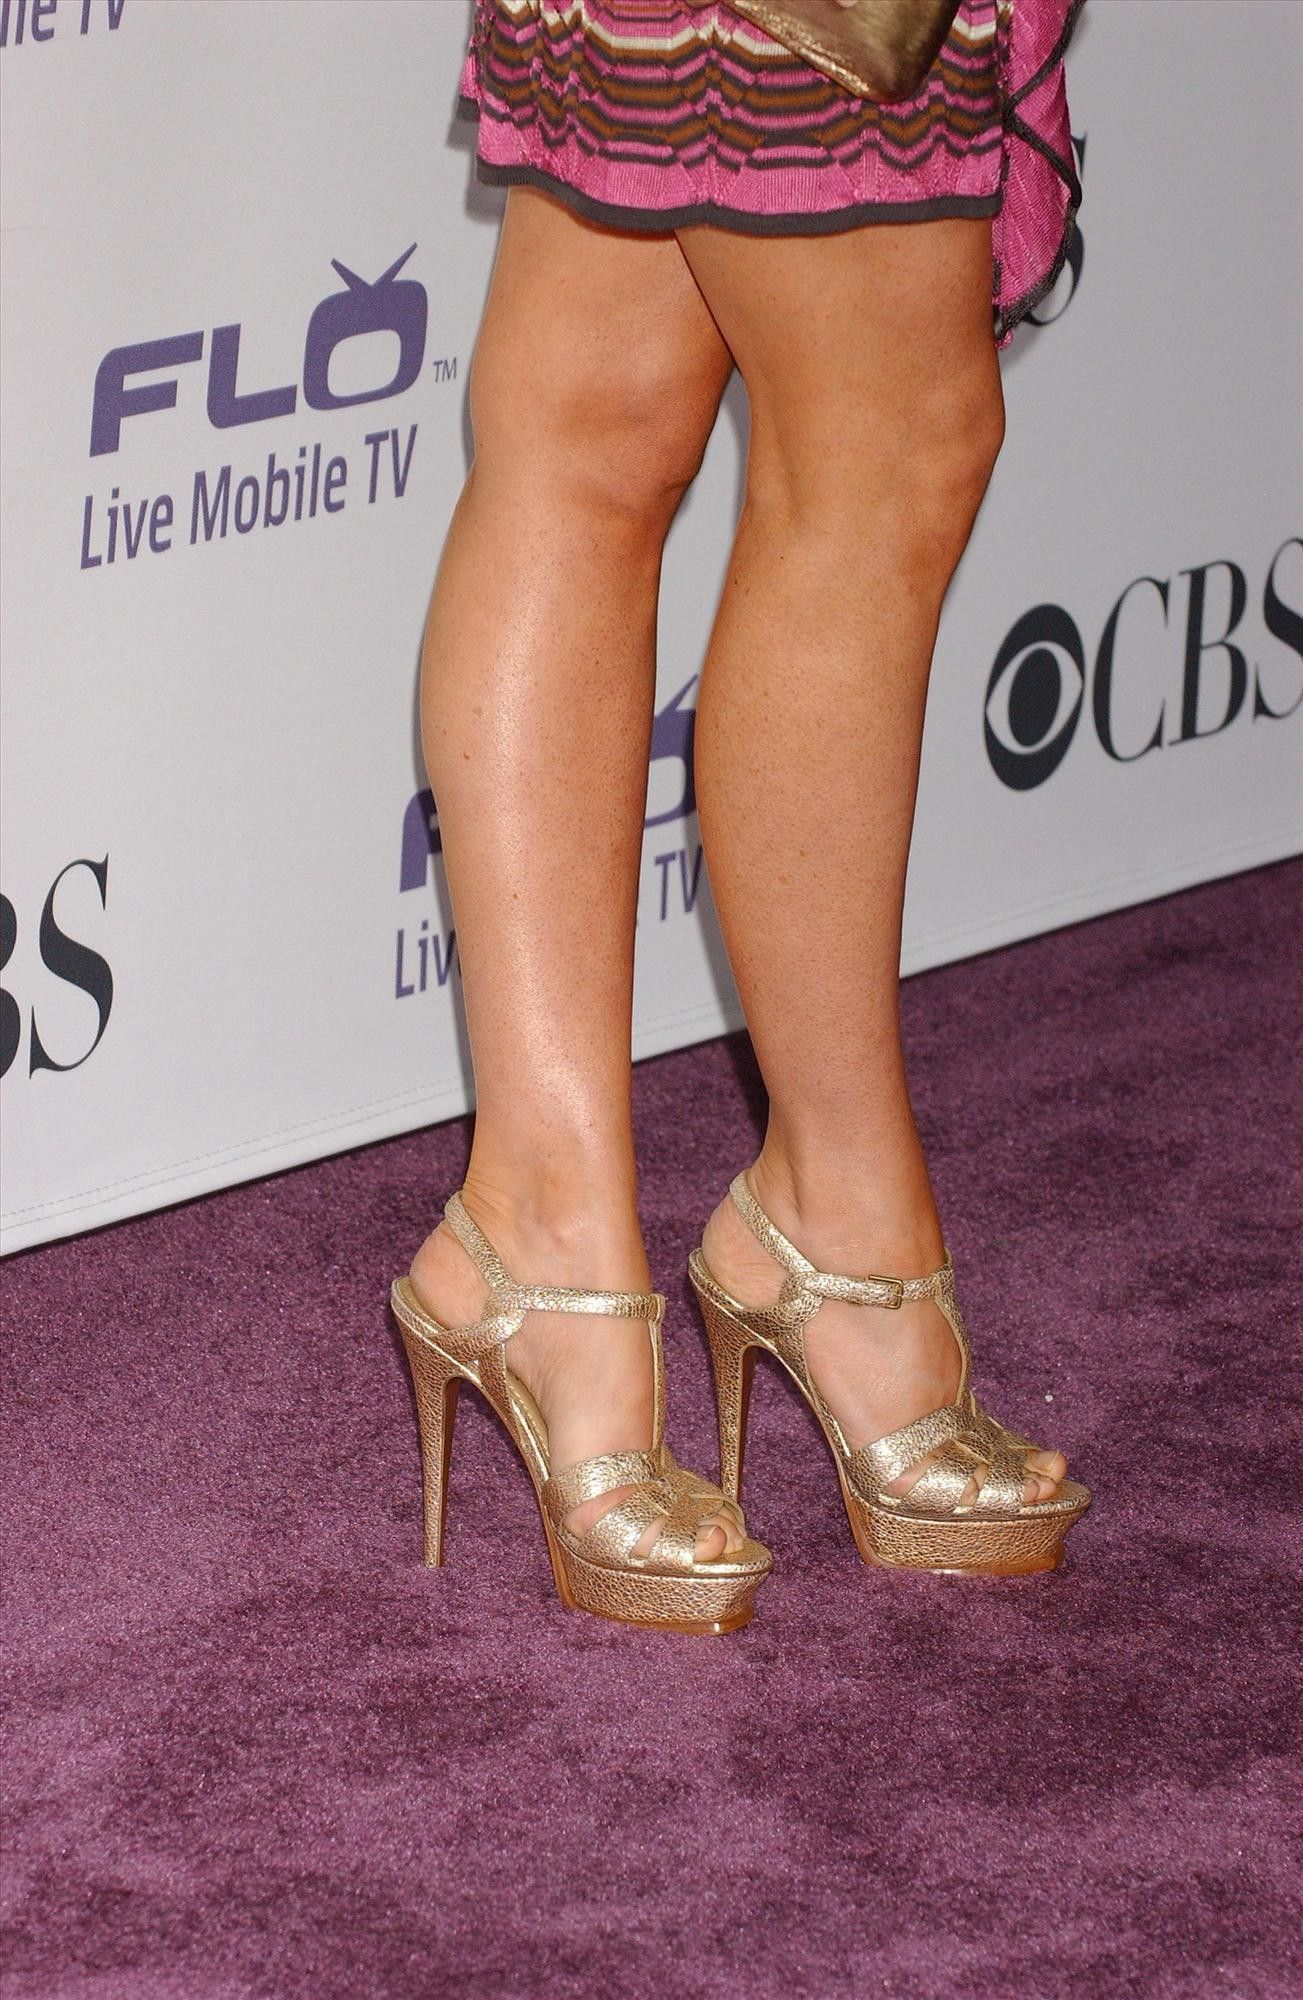 Pin by Eliat One on Legs | Town shoes, Heels, Alyson hannigan